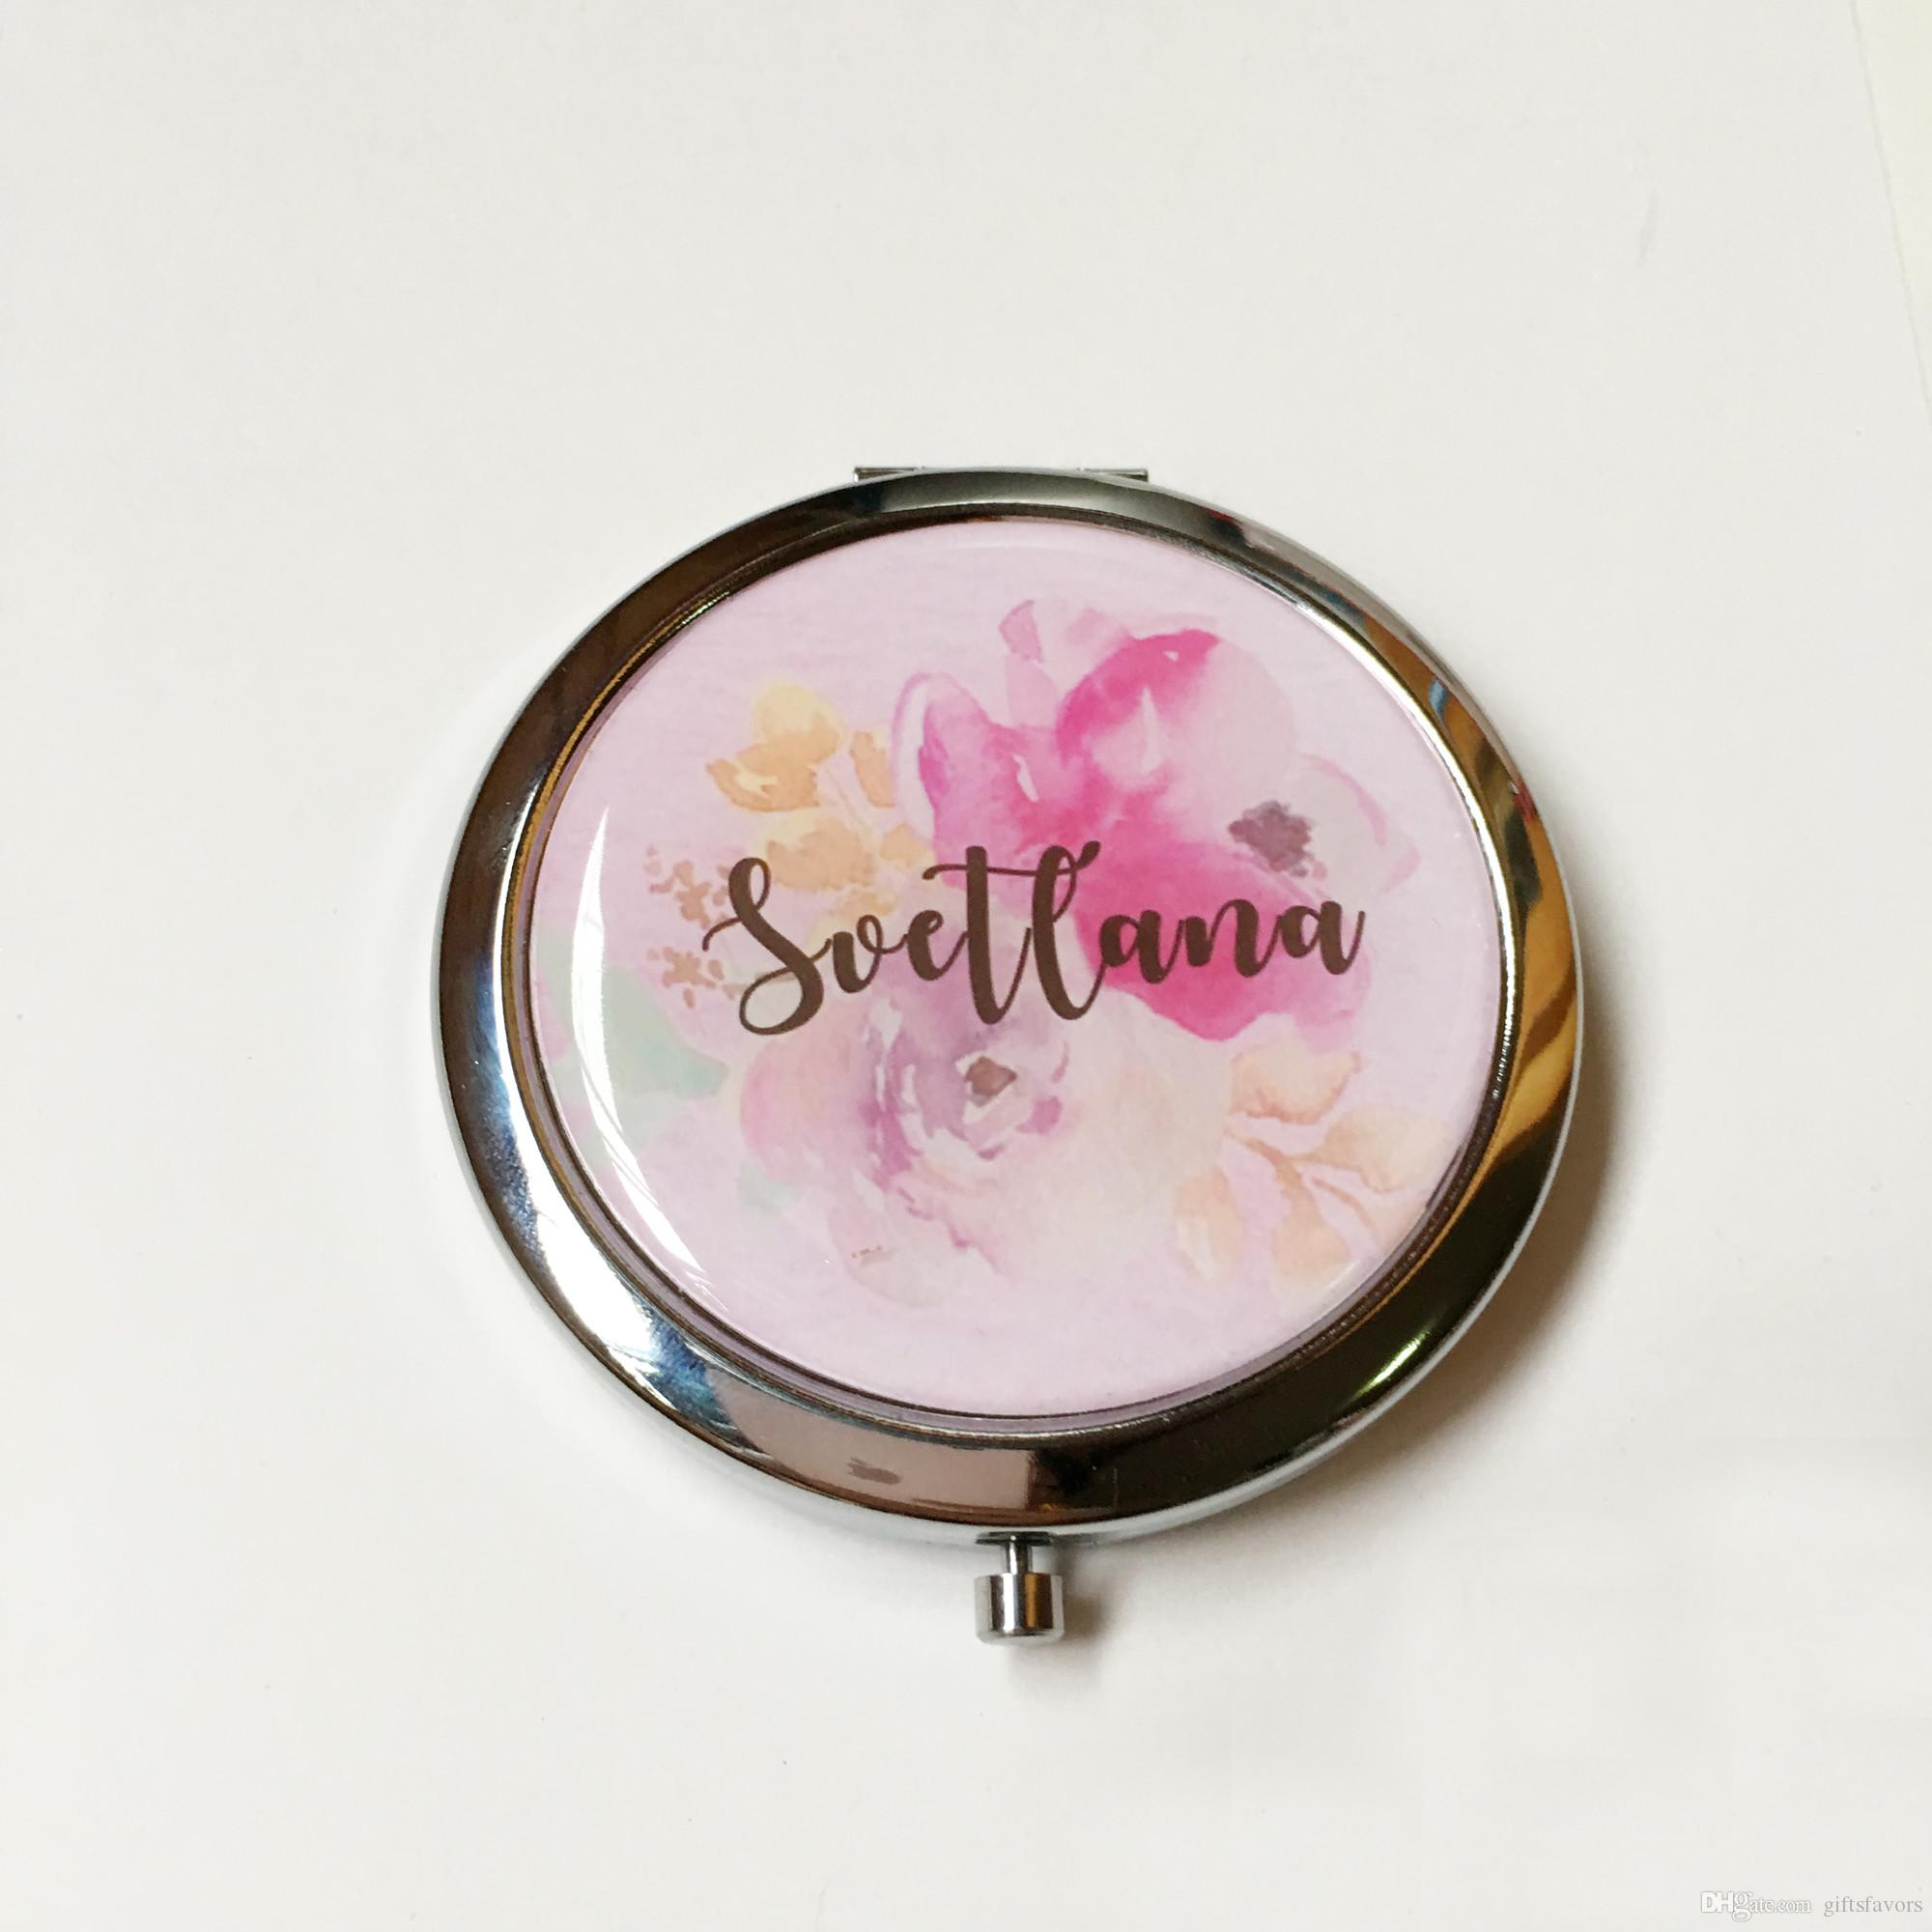 Personalized Bridesmaid Gift Compact Mirror Wedding Baby Shower Birthday Valentine'S Day Gifts Unique Make Your Own Wedding Favors Matchbook Wedding Favors ...